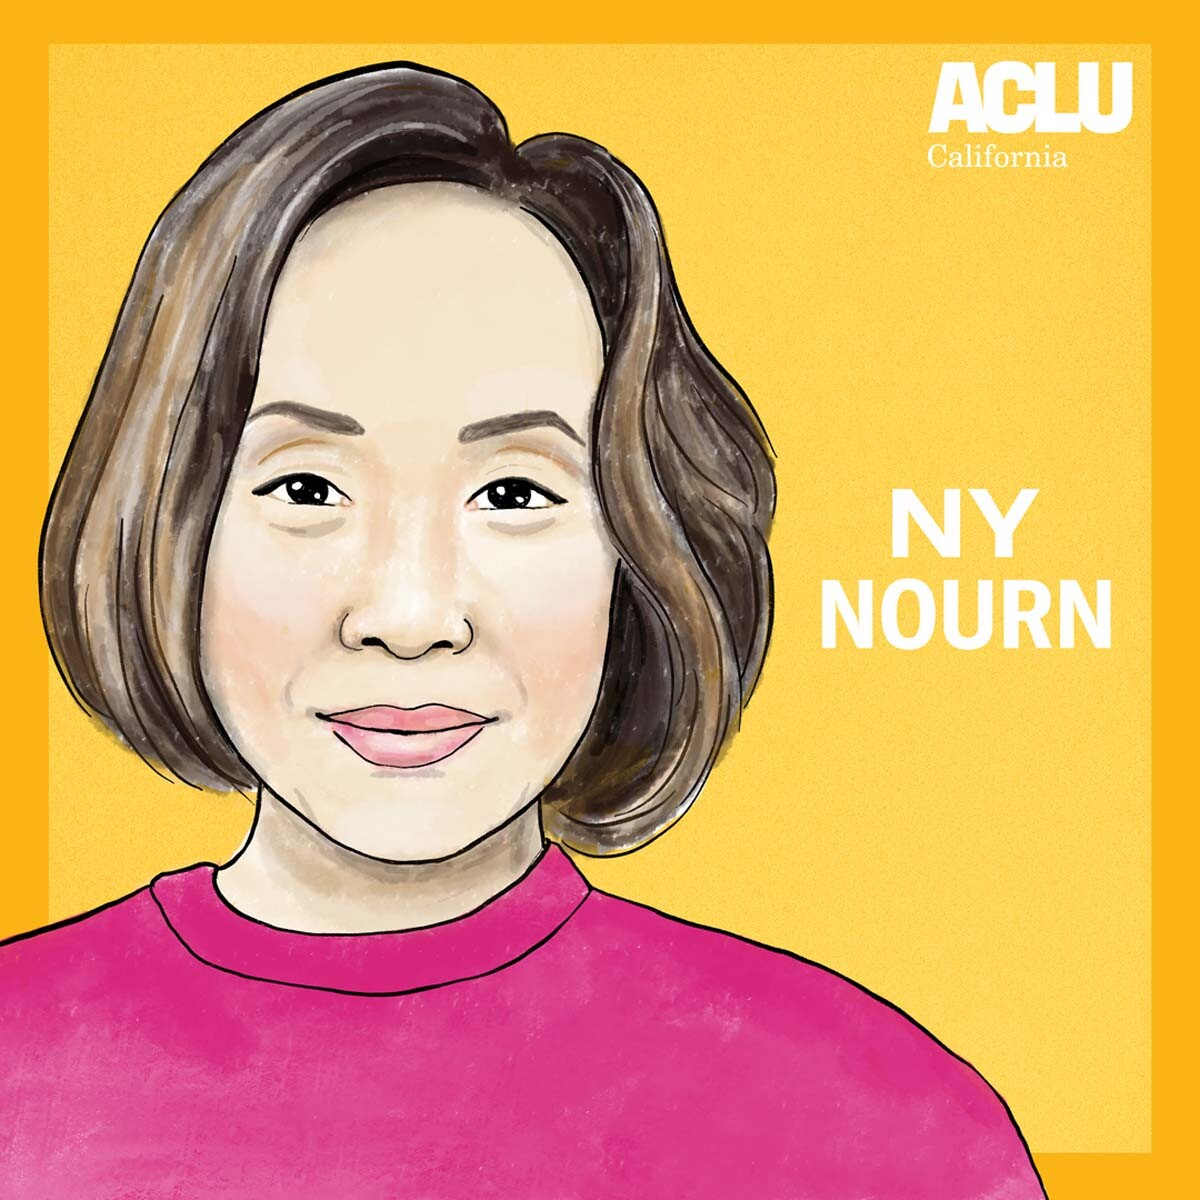 Portrait of Ny Nourn | Audrey Chan, ACLU SoCal